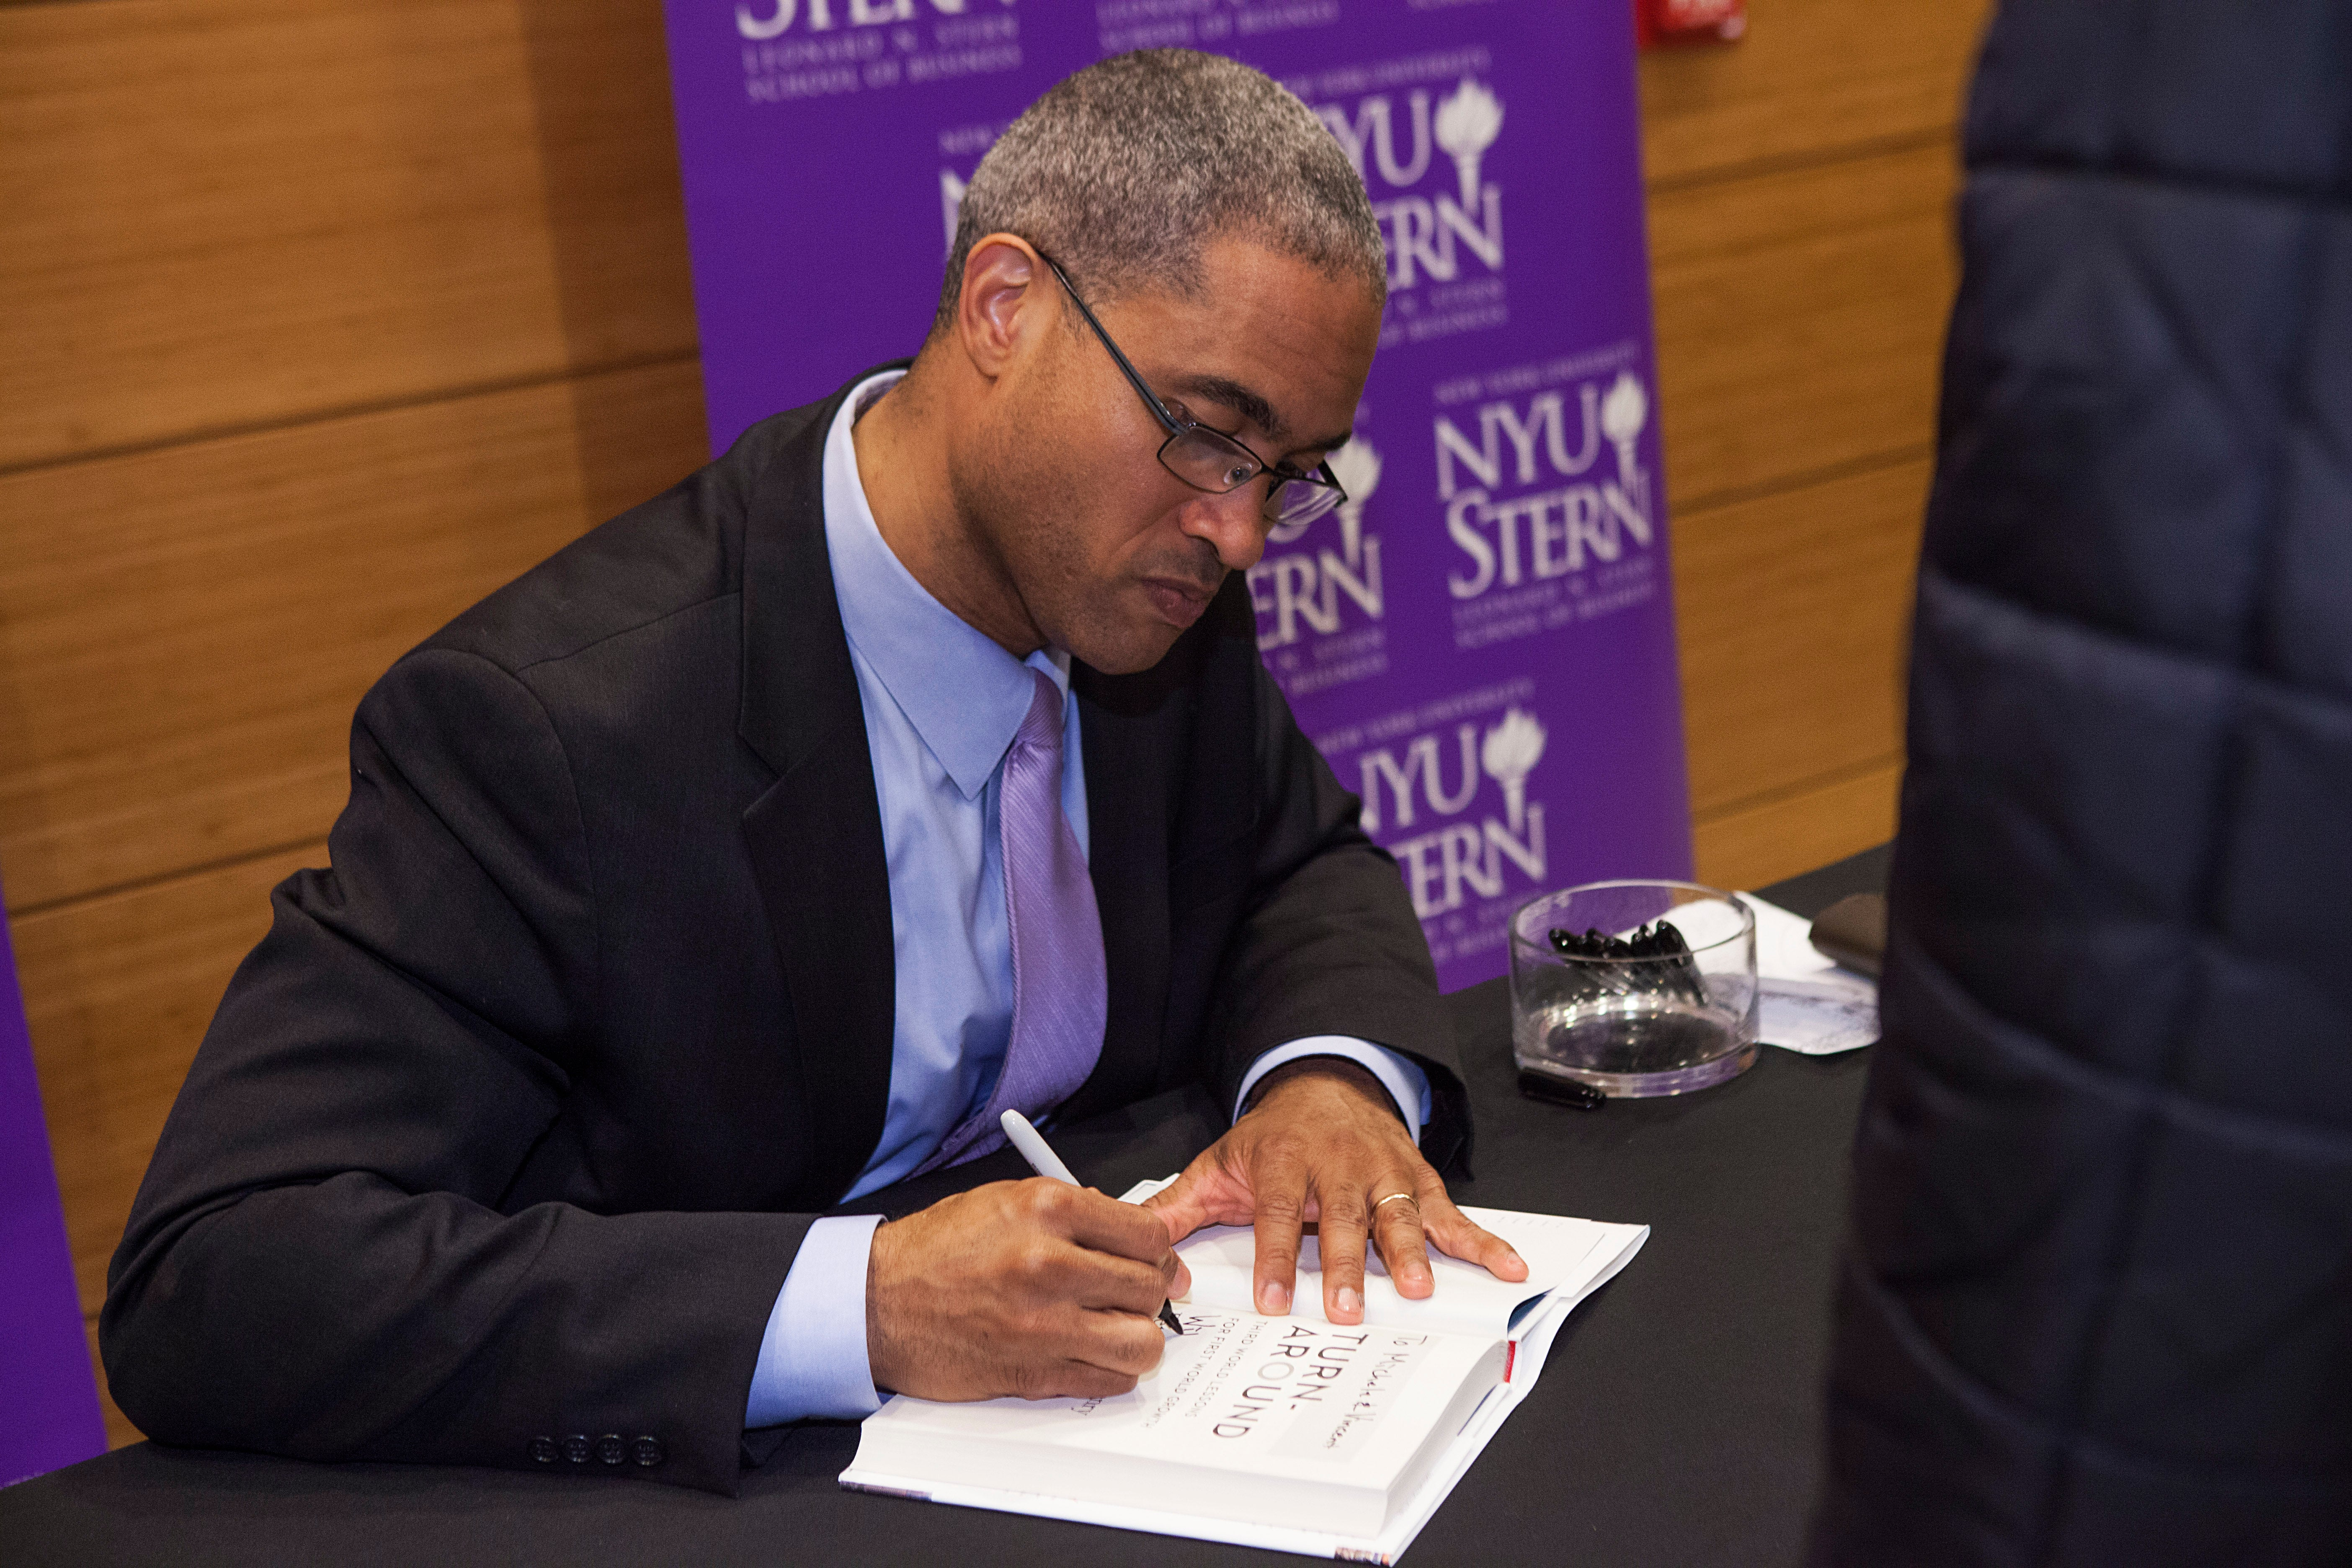 Dean Peter Henry Book Signing